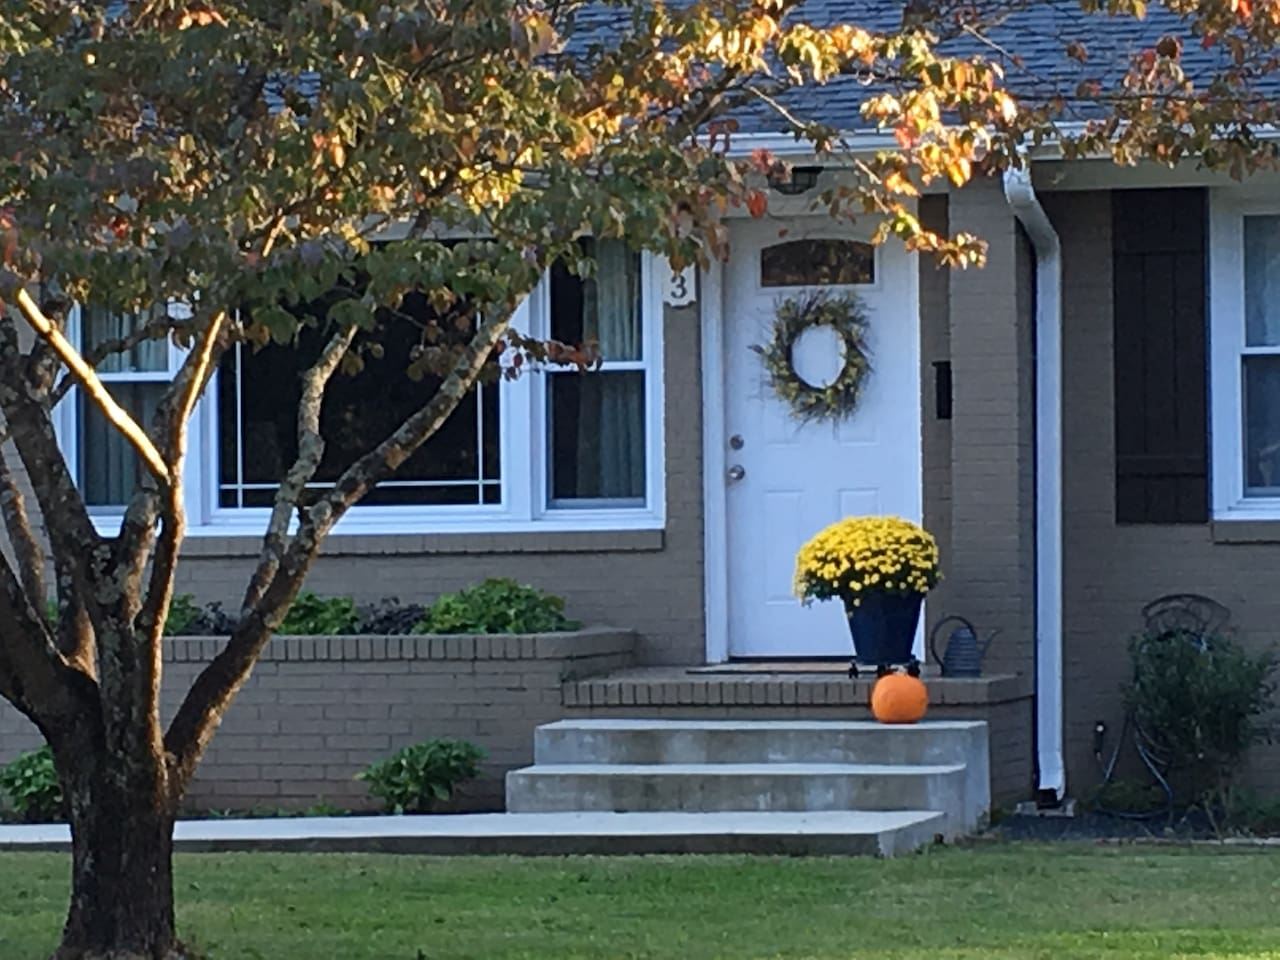 Enjoy your stay in this delightful, welcoming home in a quiet neighborhood.